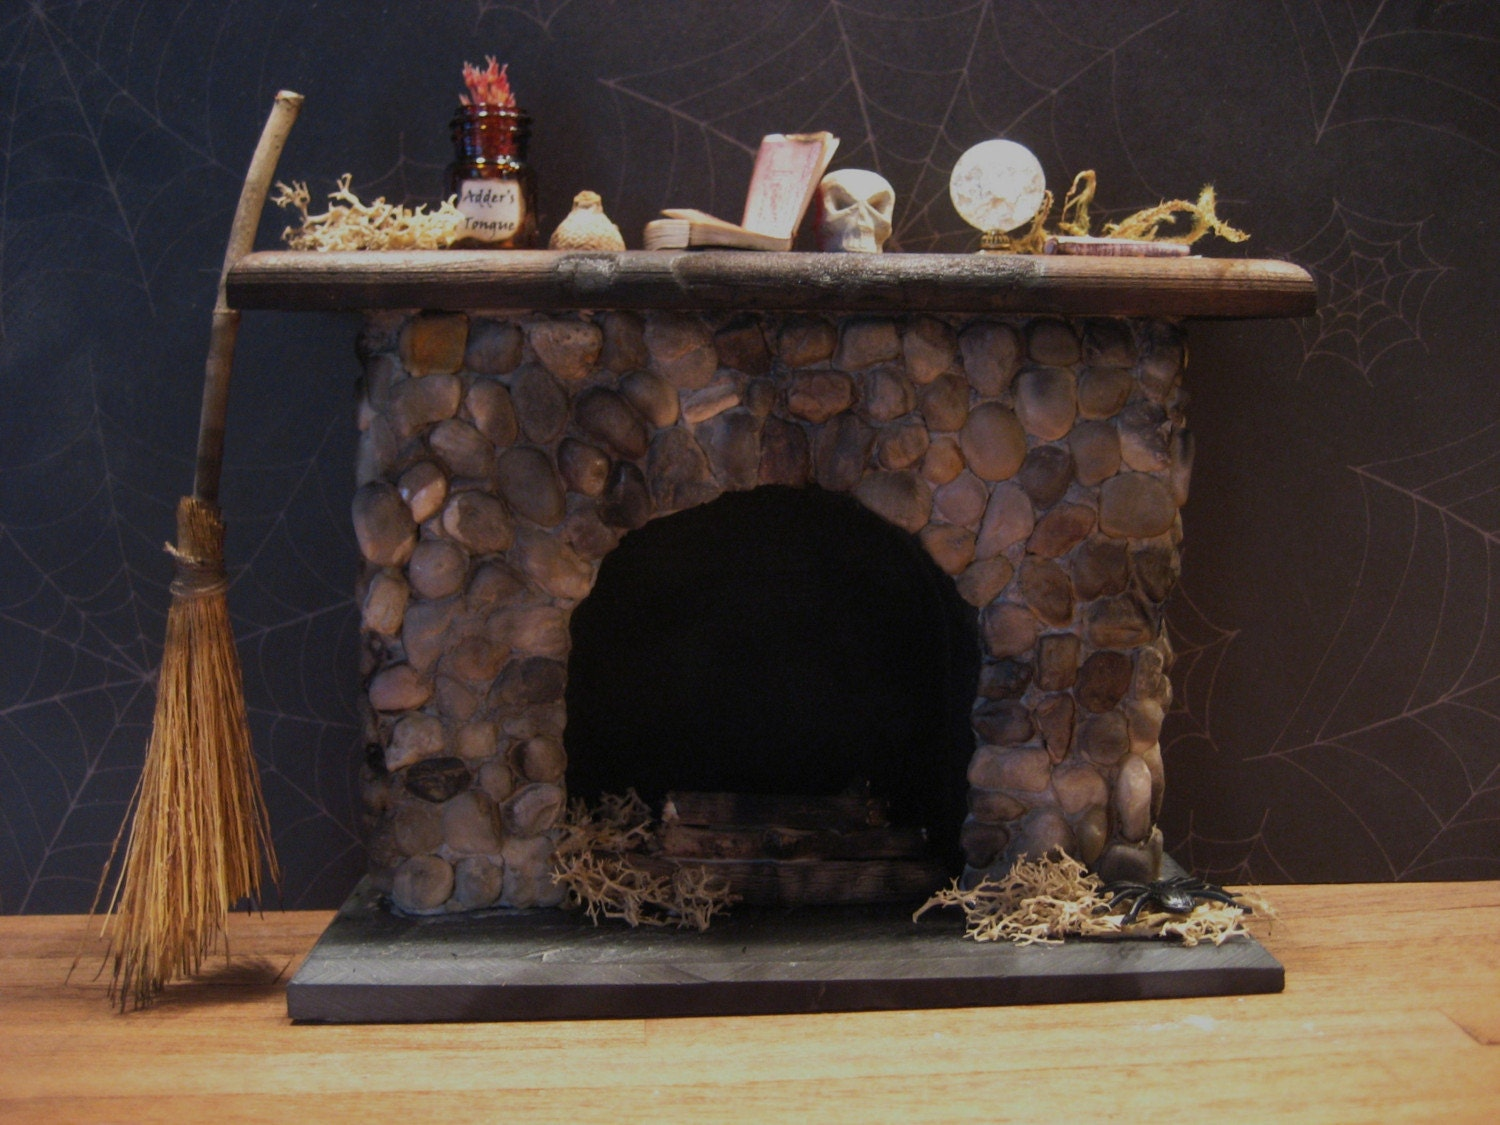 Witch S Fireplace For Haunted Dollhouse By Lilwitchy On Etsy